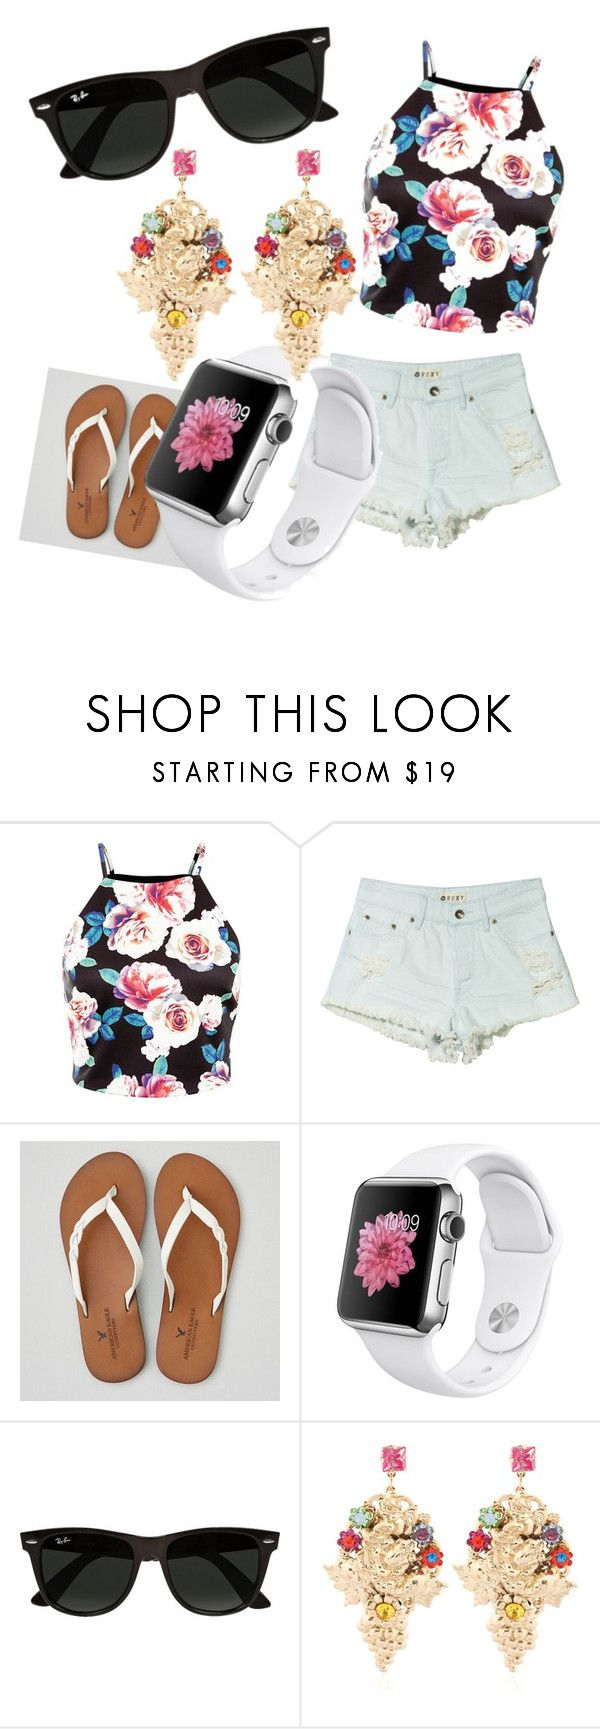 """""""#3"""" by bts-got7-block-b ❤ liked on Polyvore featuring Roxy, American Eagle Outfitters, Ray-Ban, Halo & Co., women's clothing, women, female, woman, misses and juniors"""